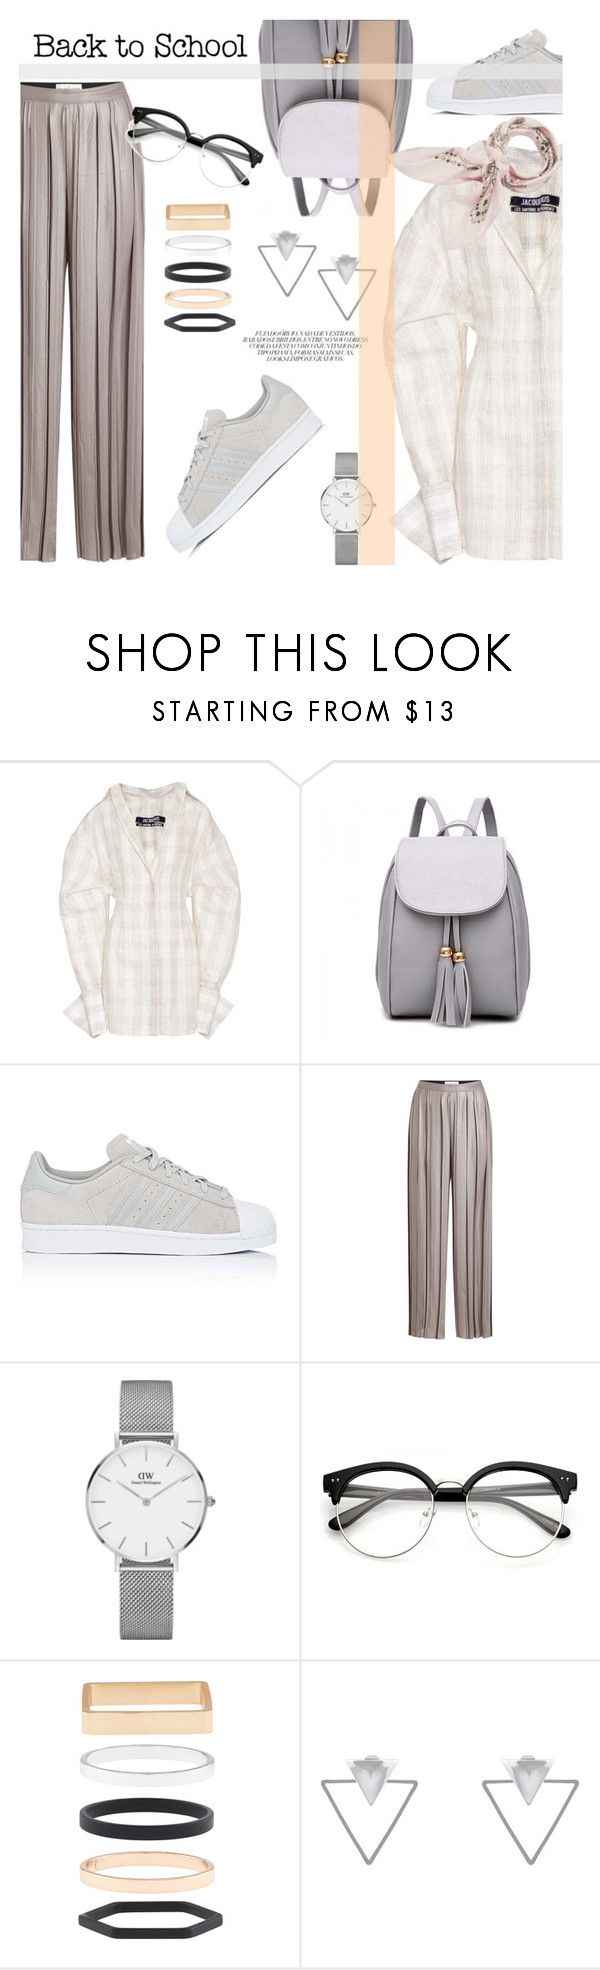 """07.08.17-2"" by malenafashion27 ❤ liked on Polyvore featuring Jacquemus, adidas, Golden Goose, Daniel Wellington, Accessorize, Eloquii and Manipuri"